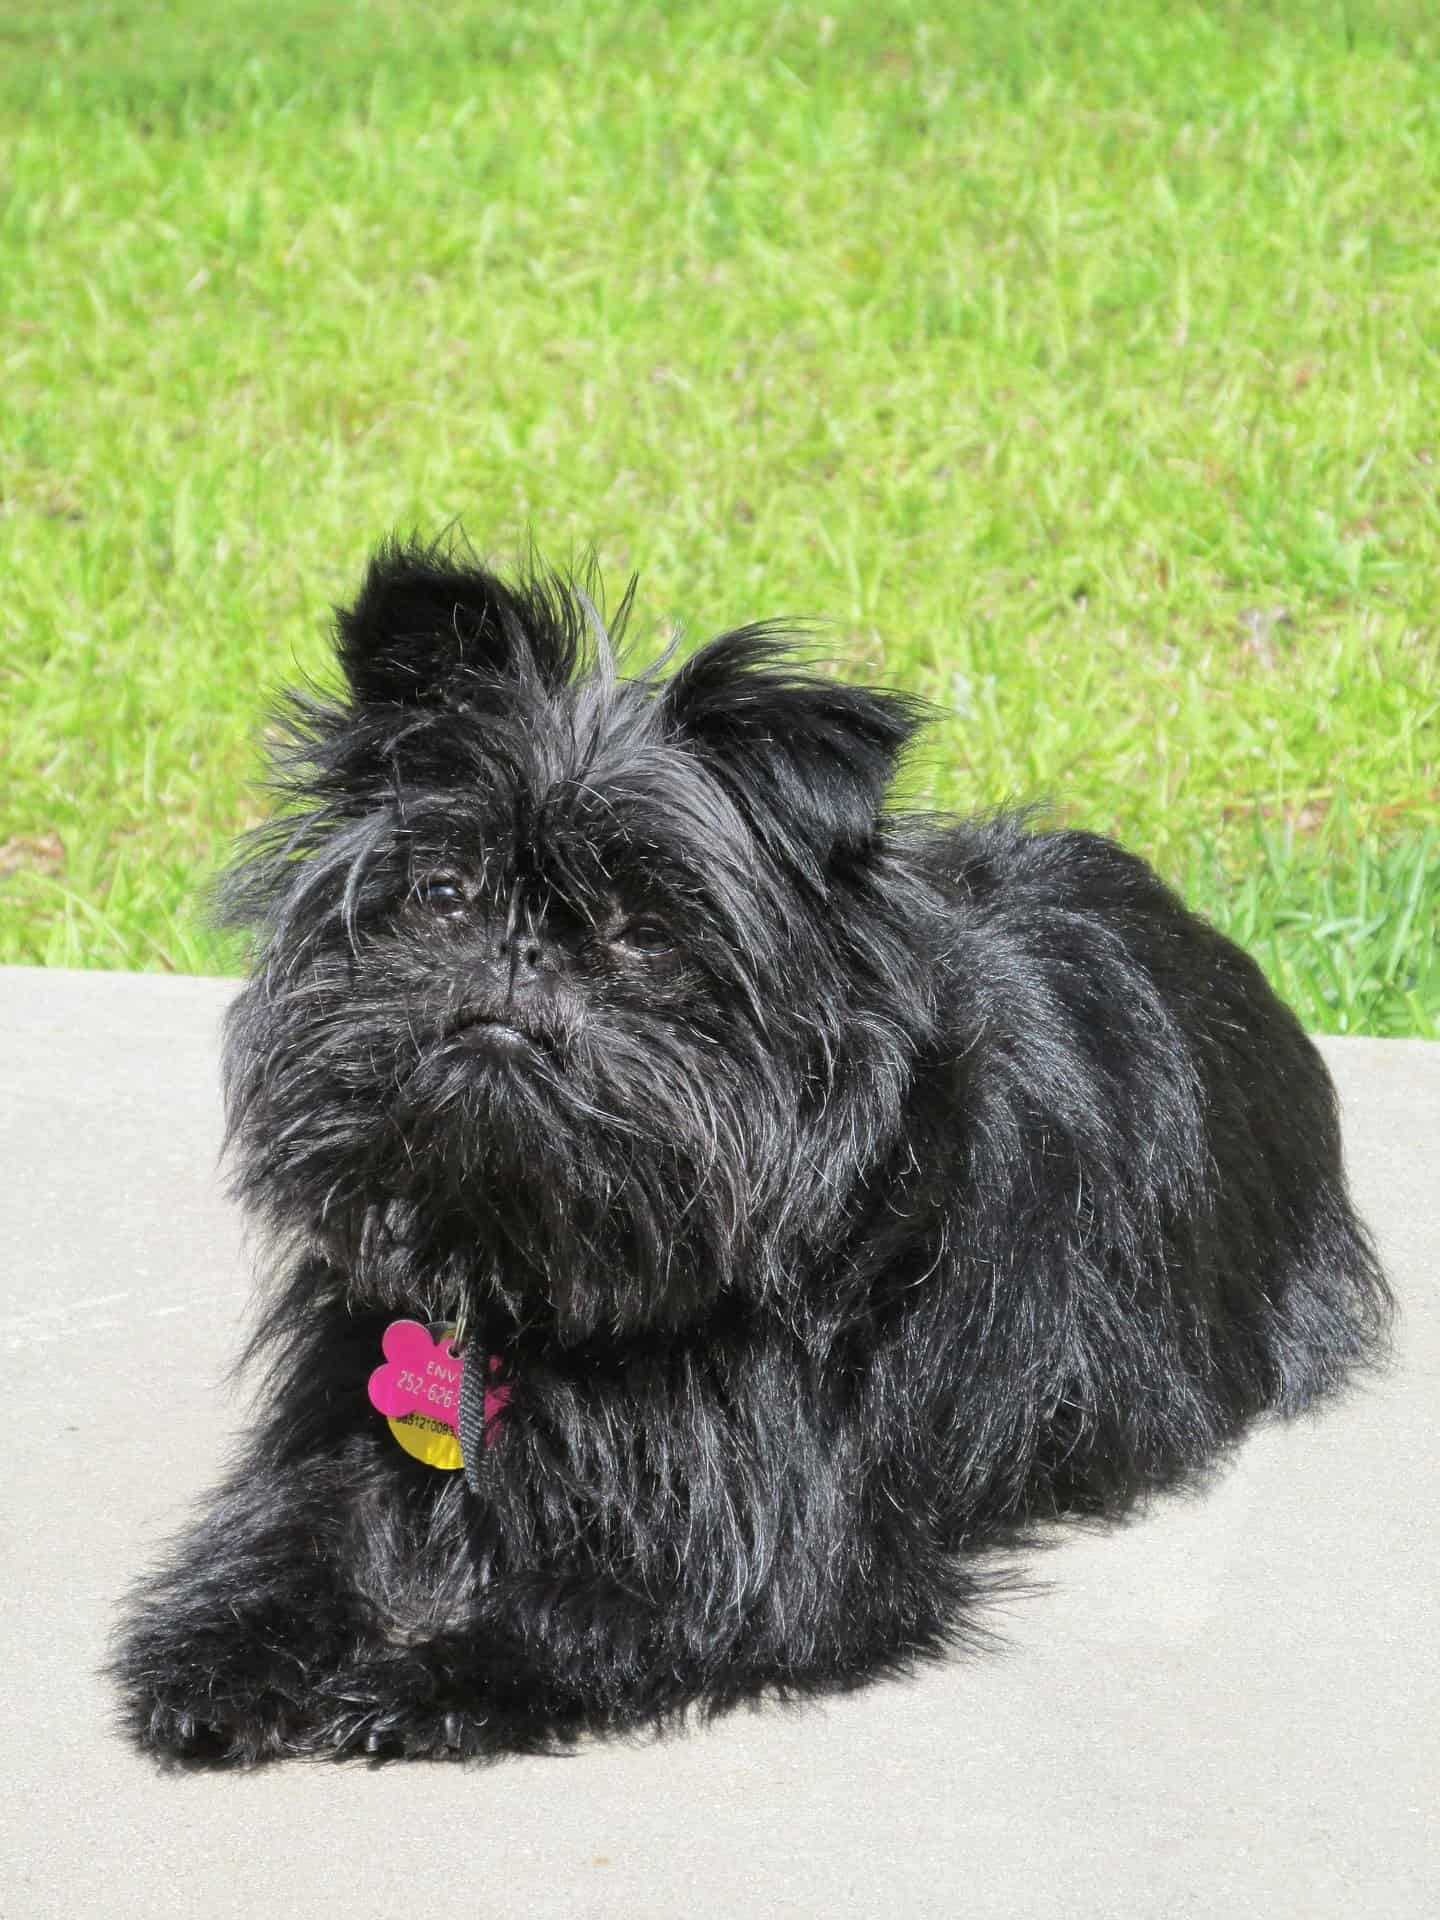 affenpinscher sitting on cemented road